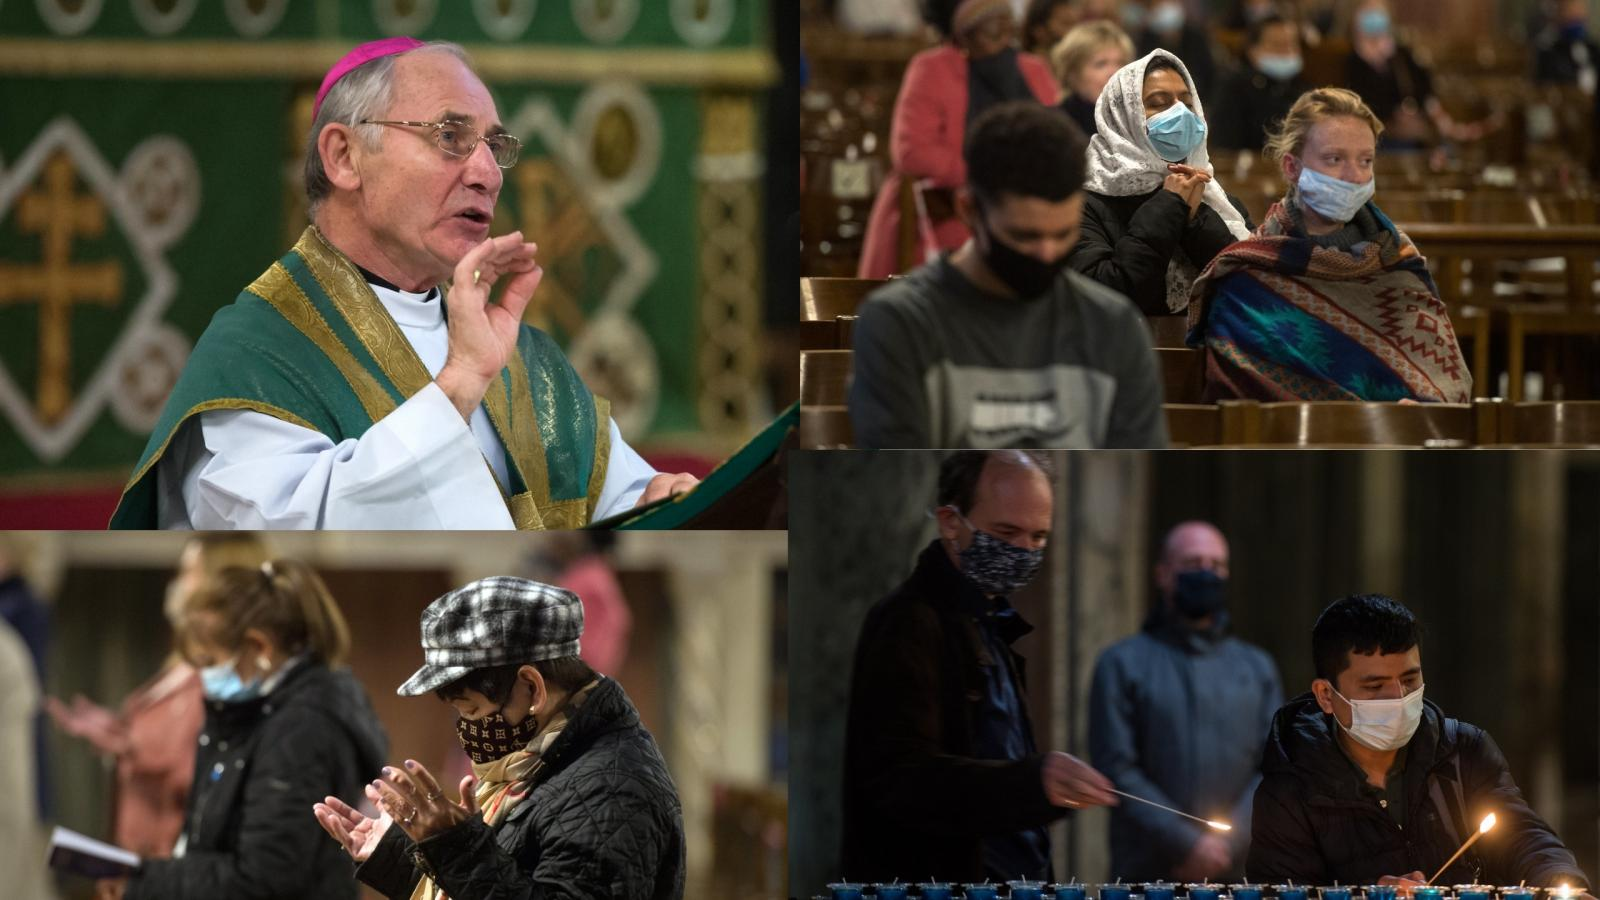 'Listen attentively to migrants and refugees,' says Bishop Paul McAleenan - Diocese of Westminster